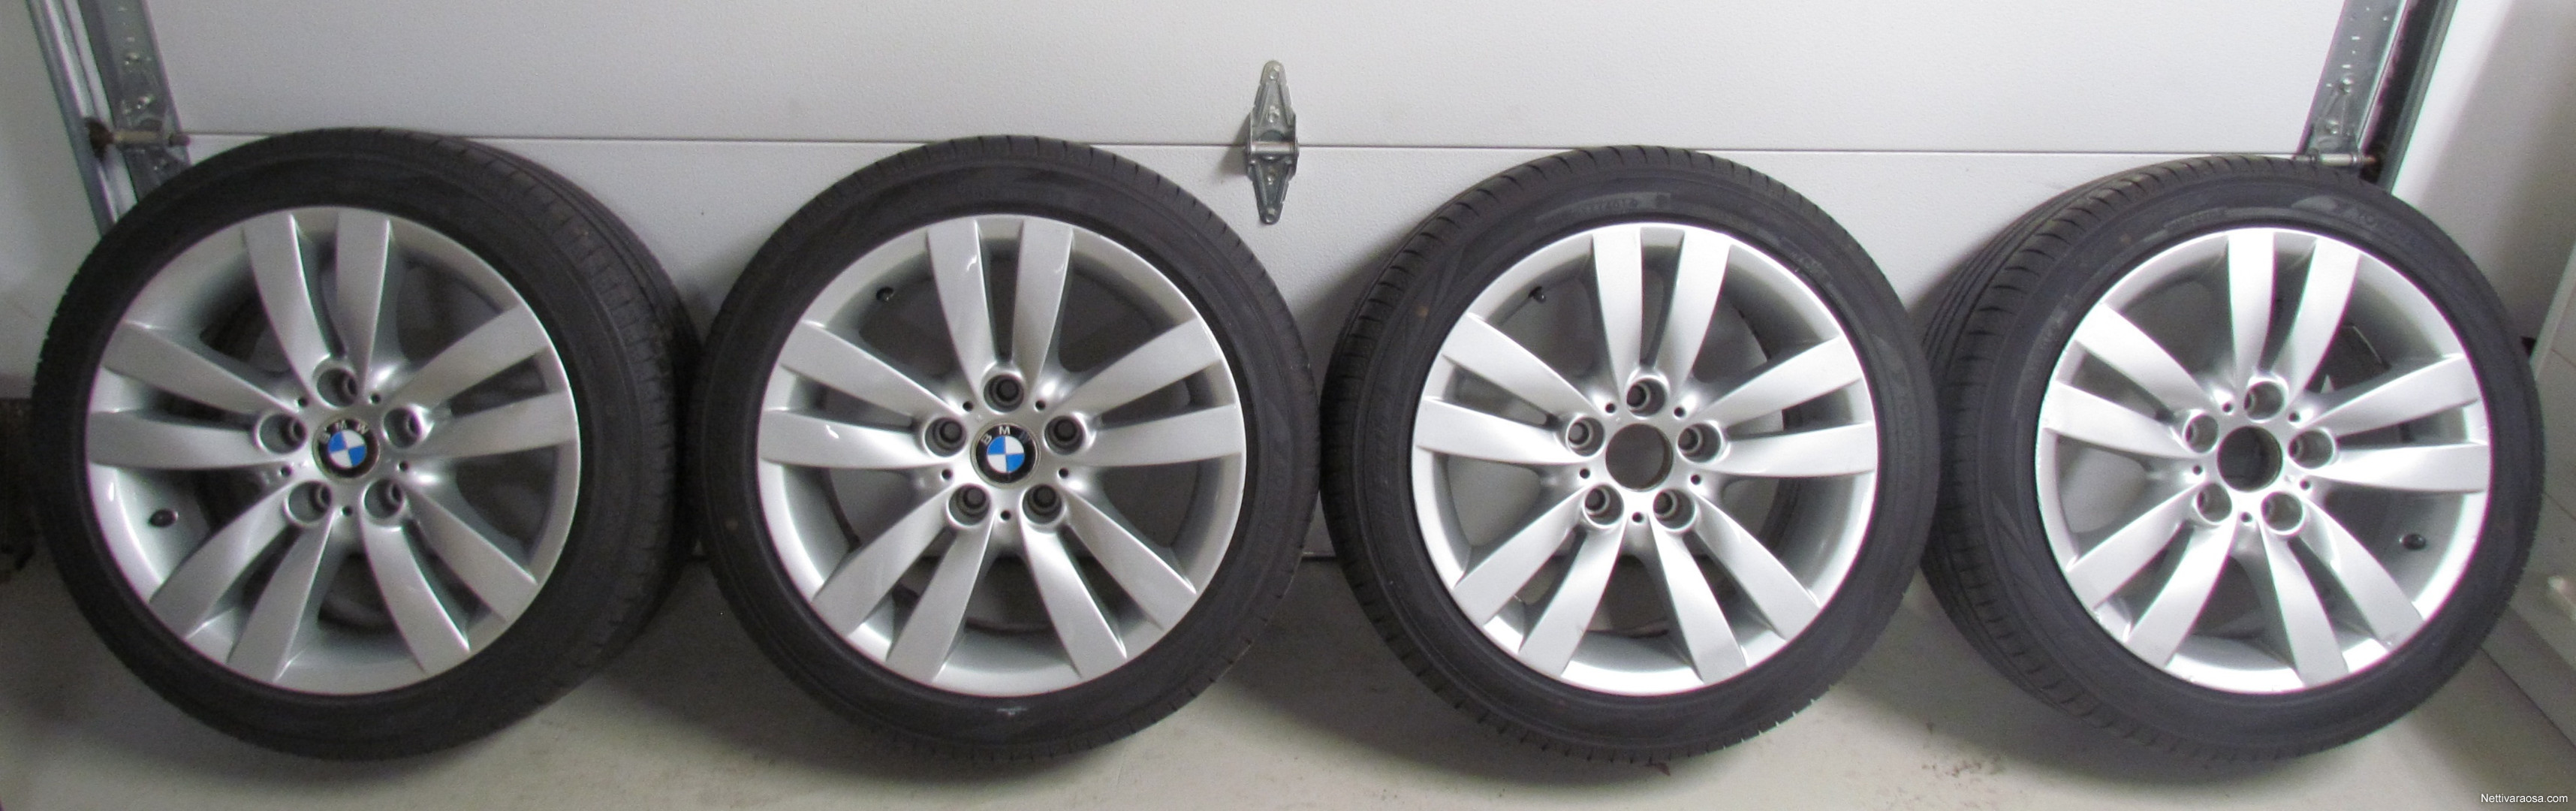 forums rims classifieds rim private net member style bmw styles